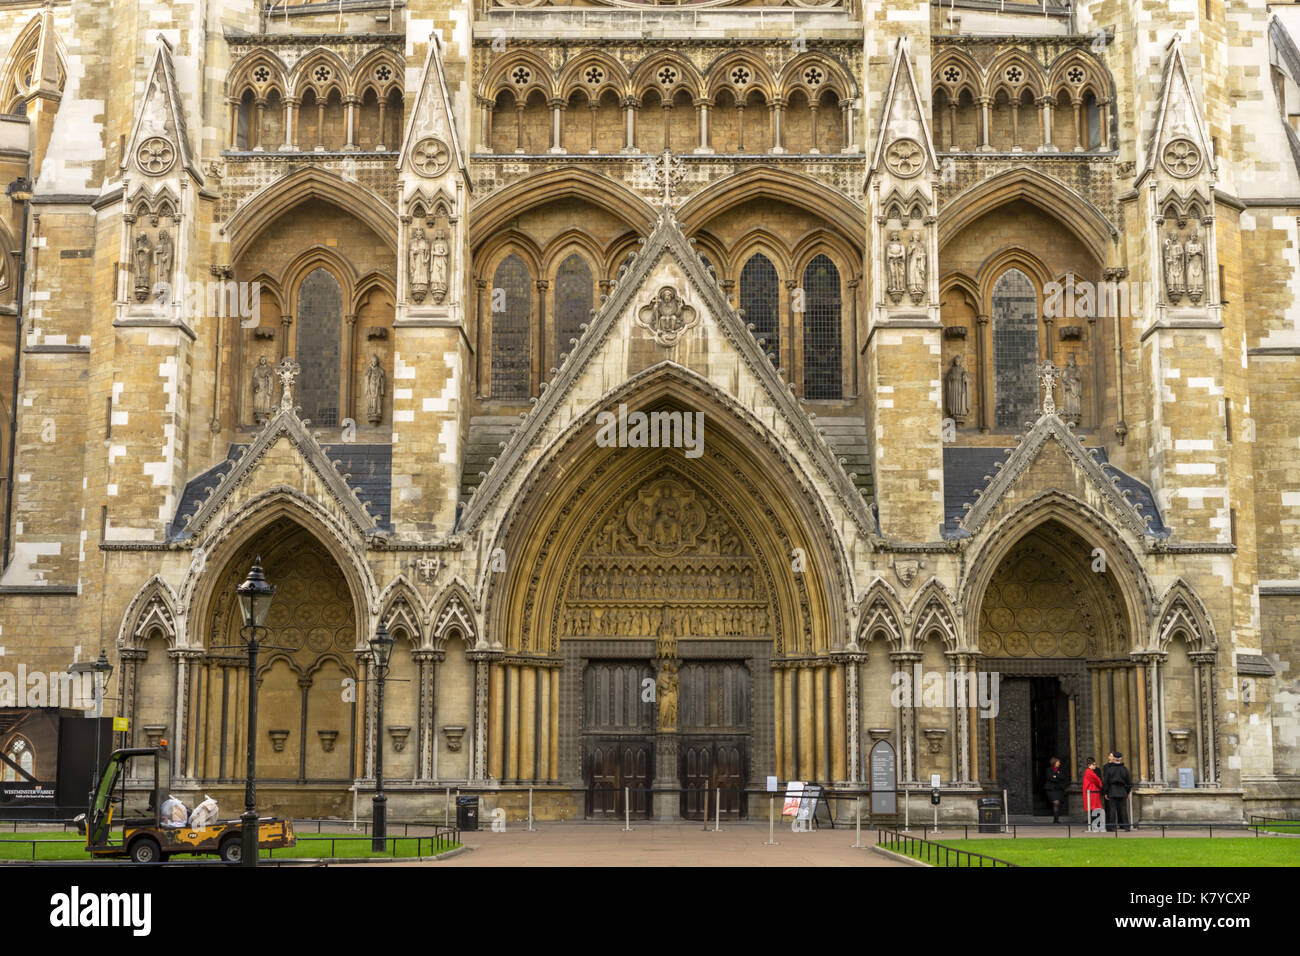 North entrance of Westminster Abbey - Stock Image